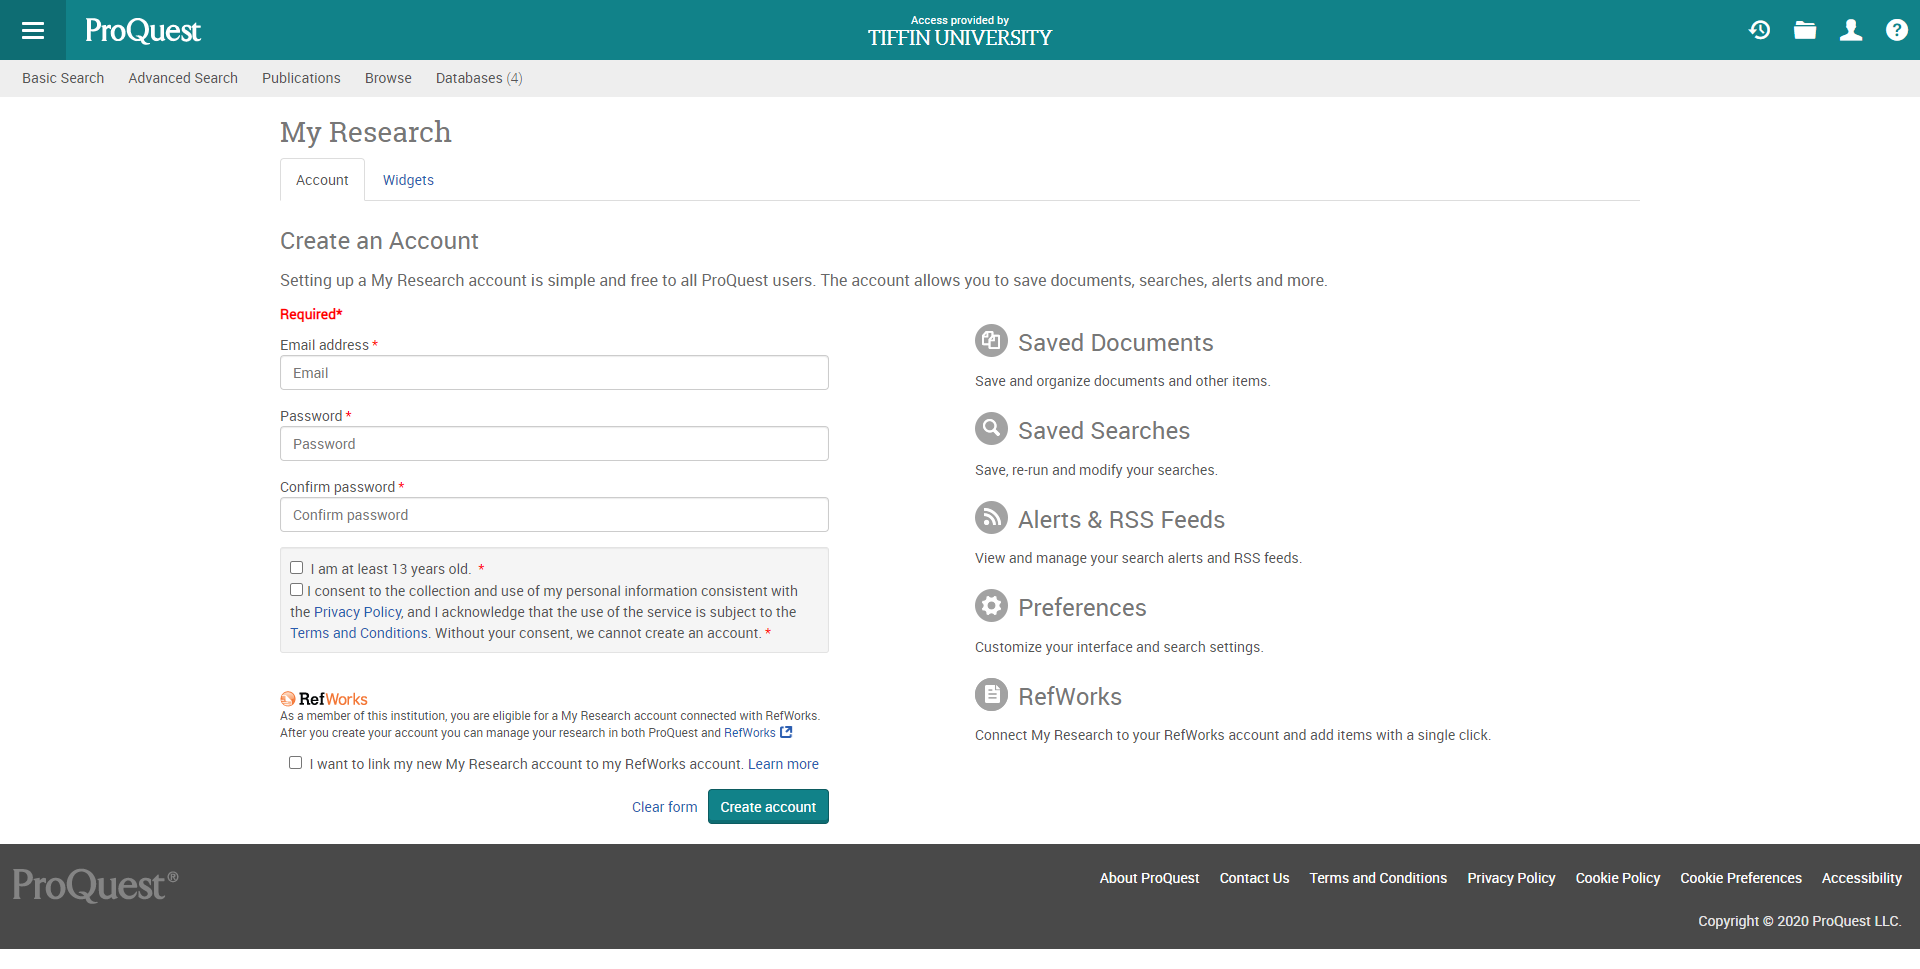 create a new my research account page